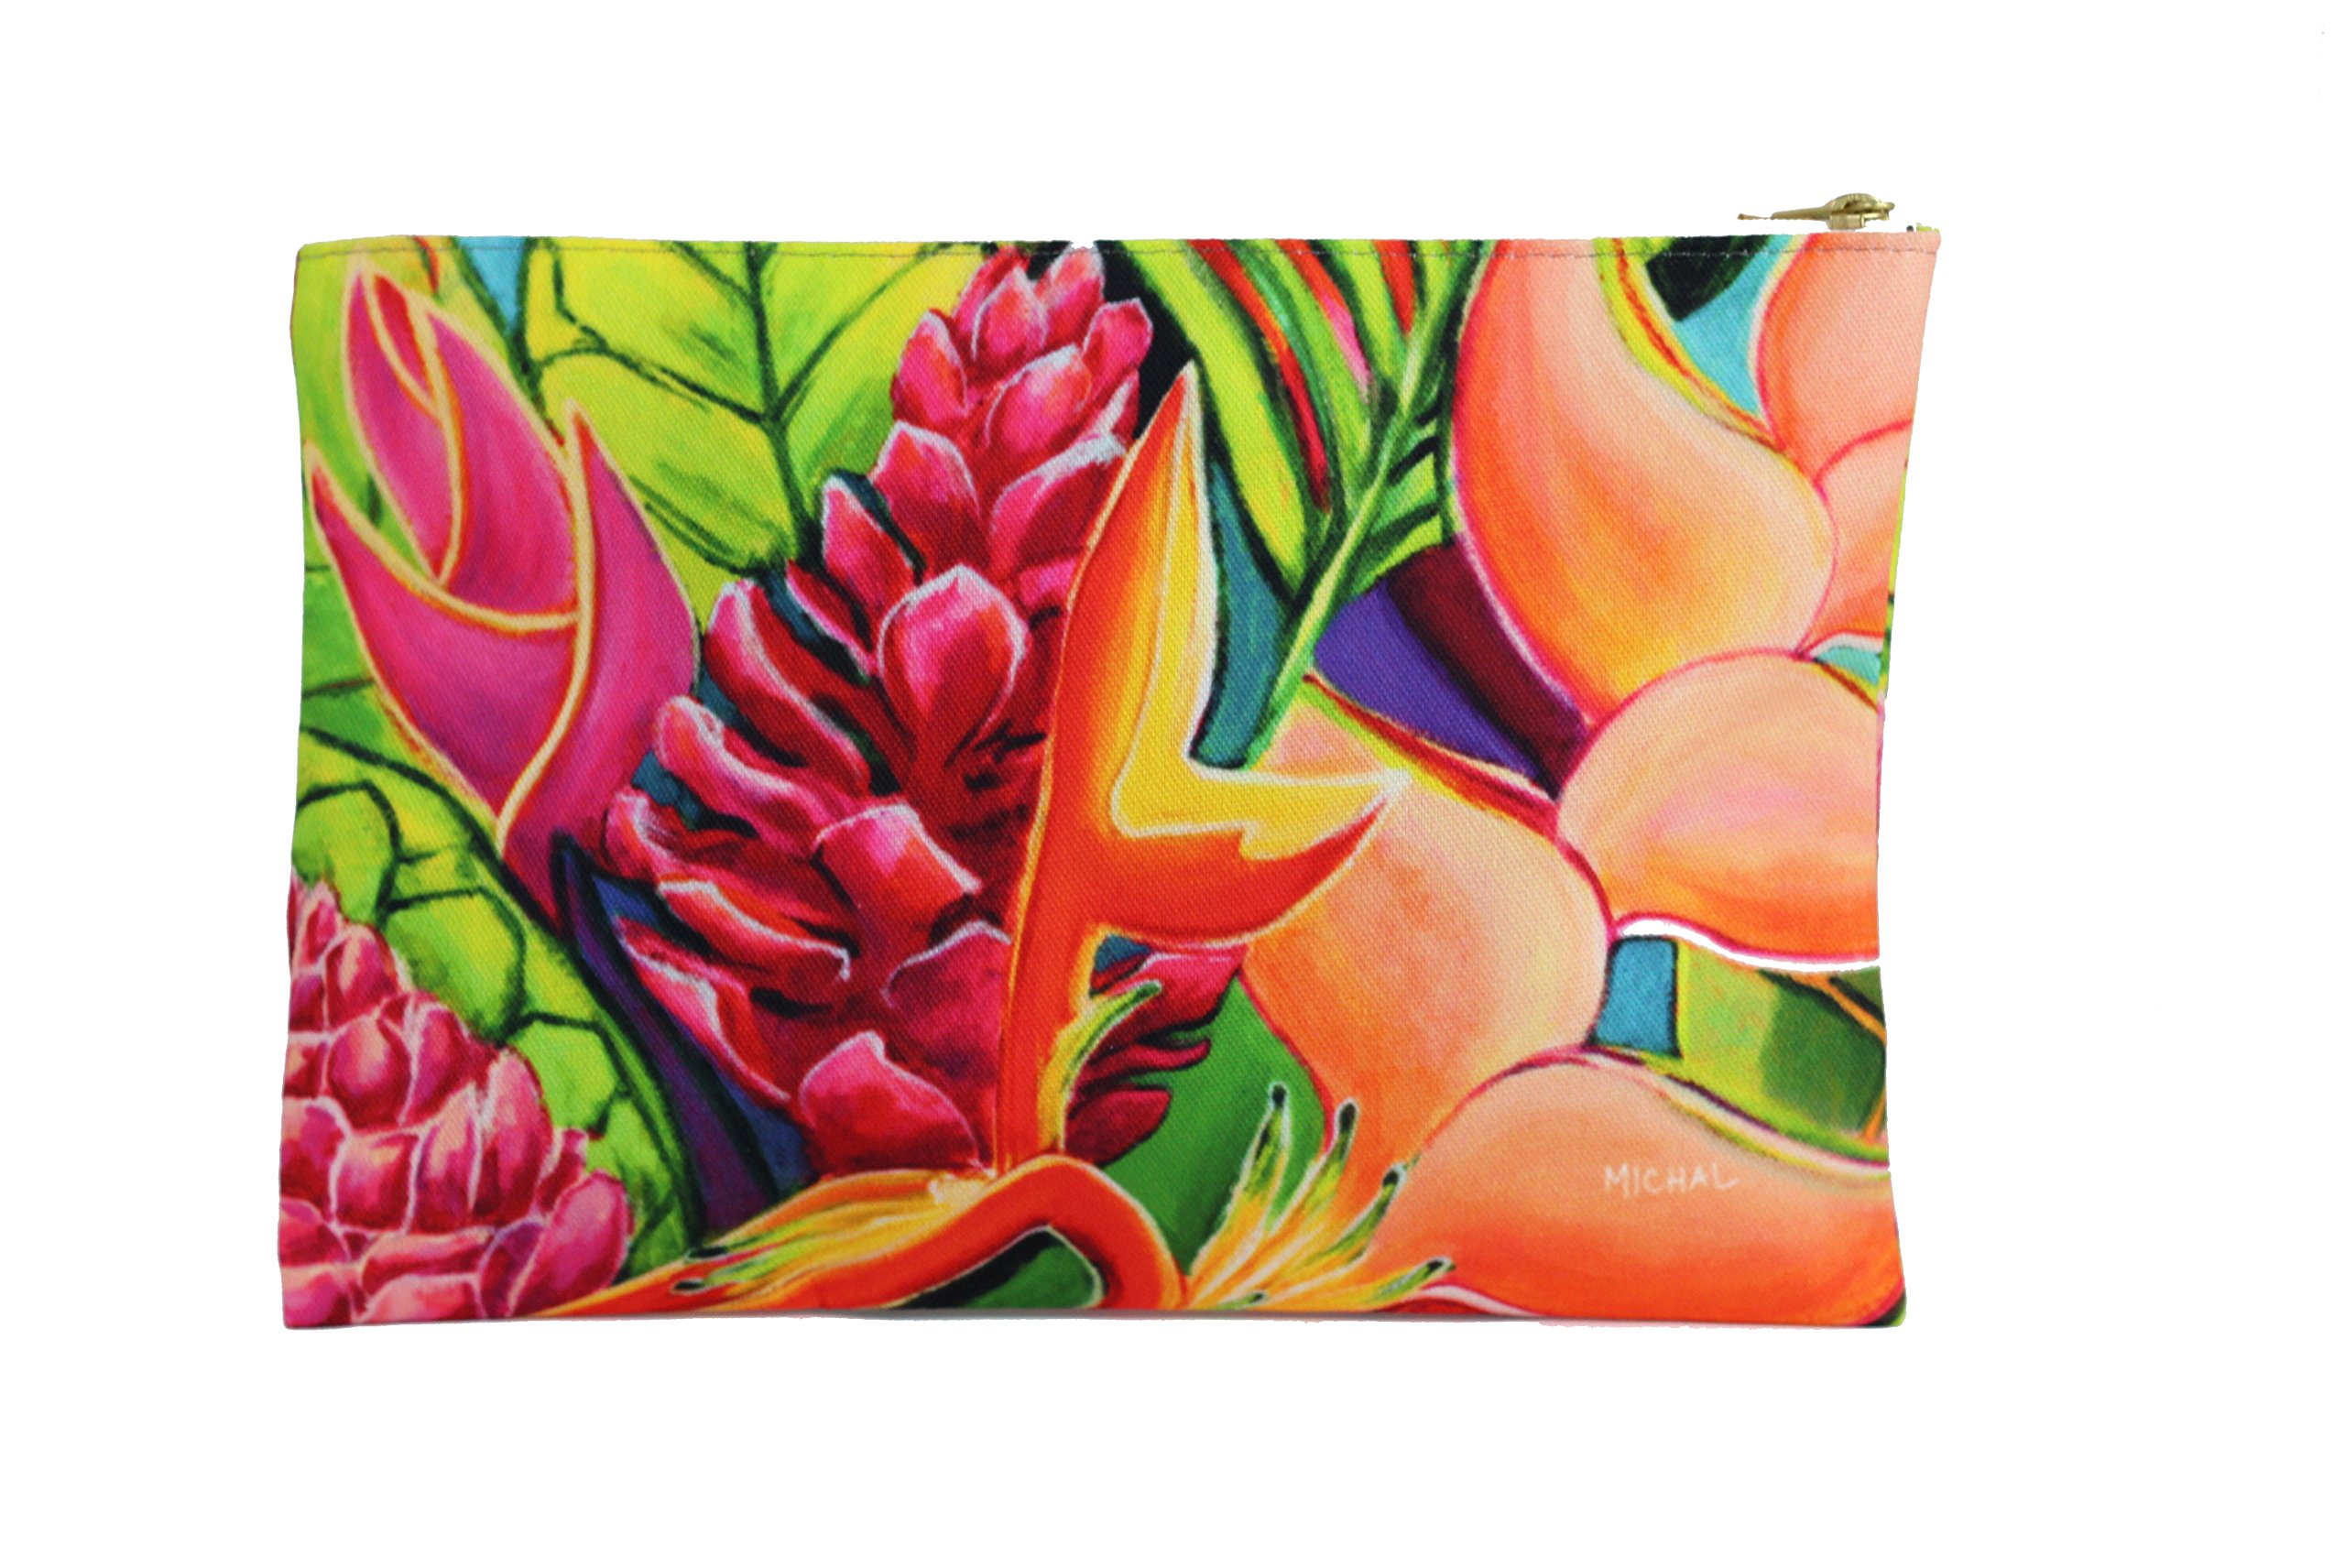 Hawaii Clutch Tropical Unique Hand Bag by MICHAL - Contemplation Flowers - Kauai - 12.5x8.5'' - Hawaii art, island style, everything fits in